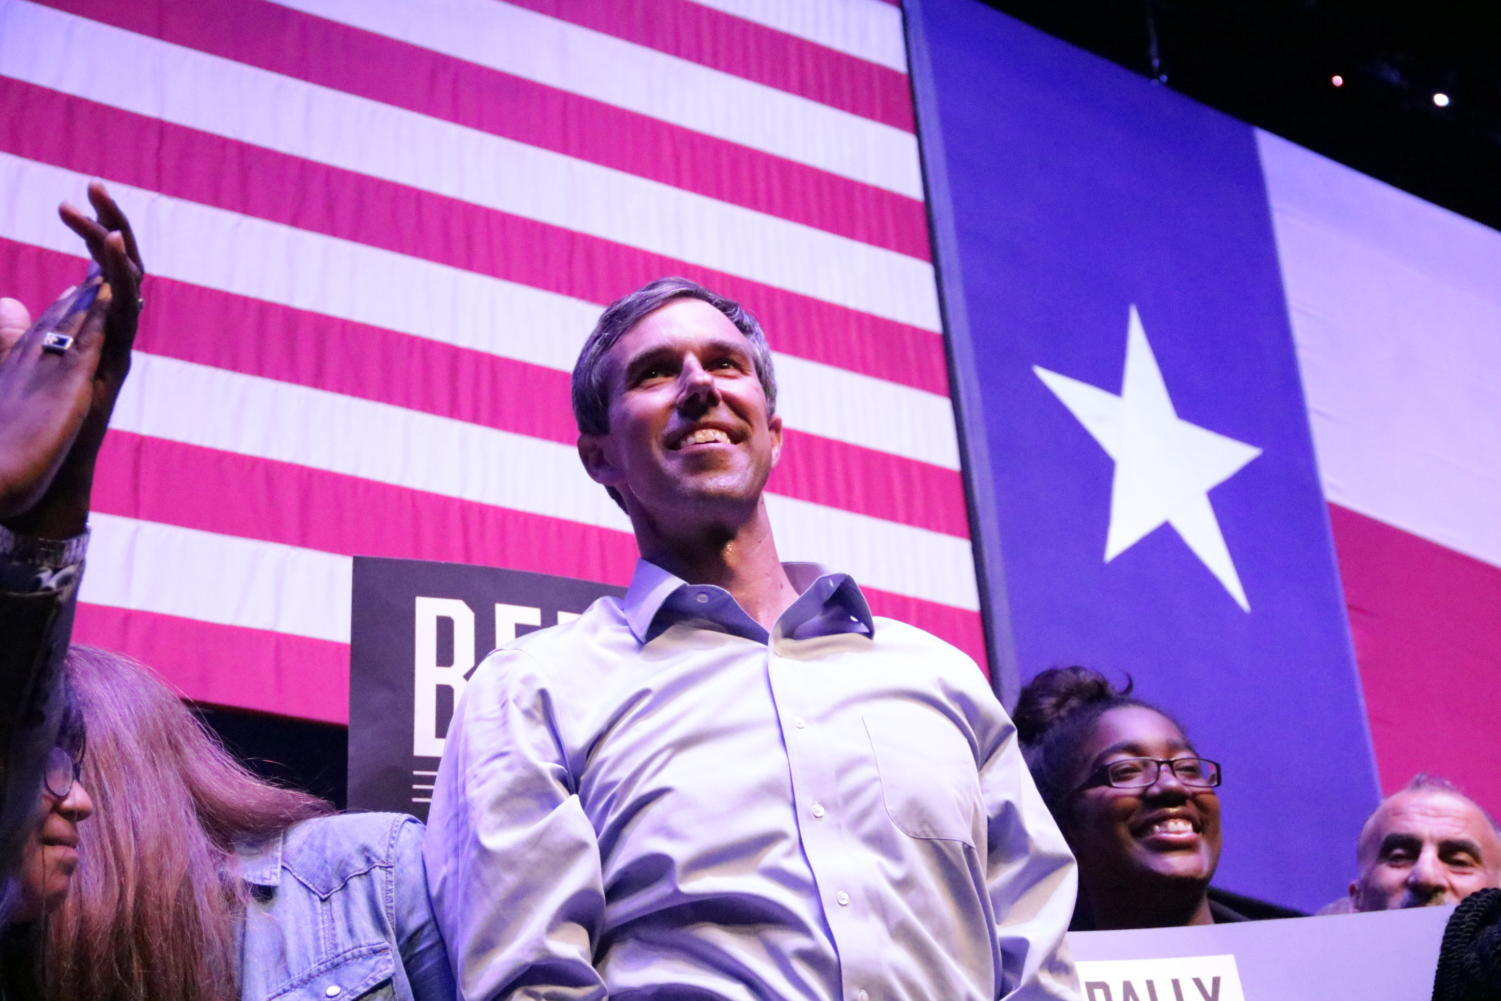 """Democratic Presidential Candidate Beto O'Rourke looks into the audience cheering for him after his speech addressing immigration issues, gun reform, climate change and healthcare. Beto O'Rourke held his rally at The Theatre at Grand Prairie on Thursday as a counter rally themed """"Rally Against Hate."""""""